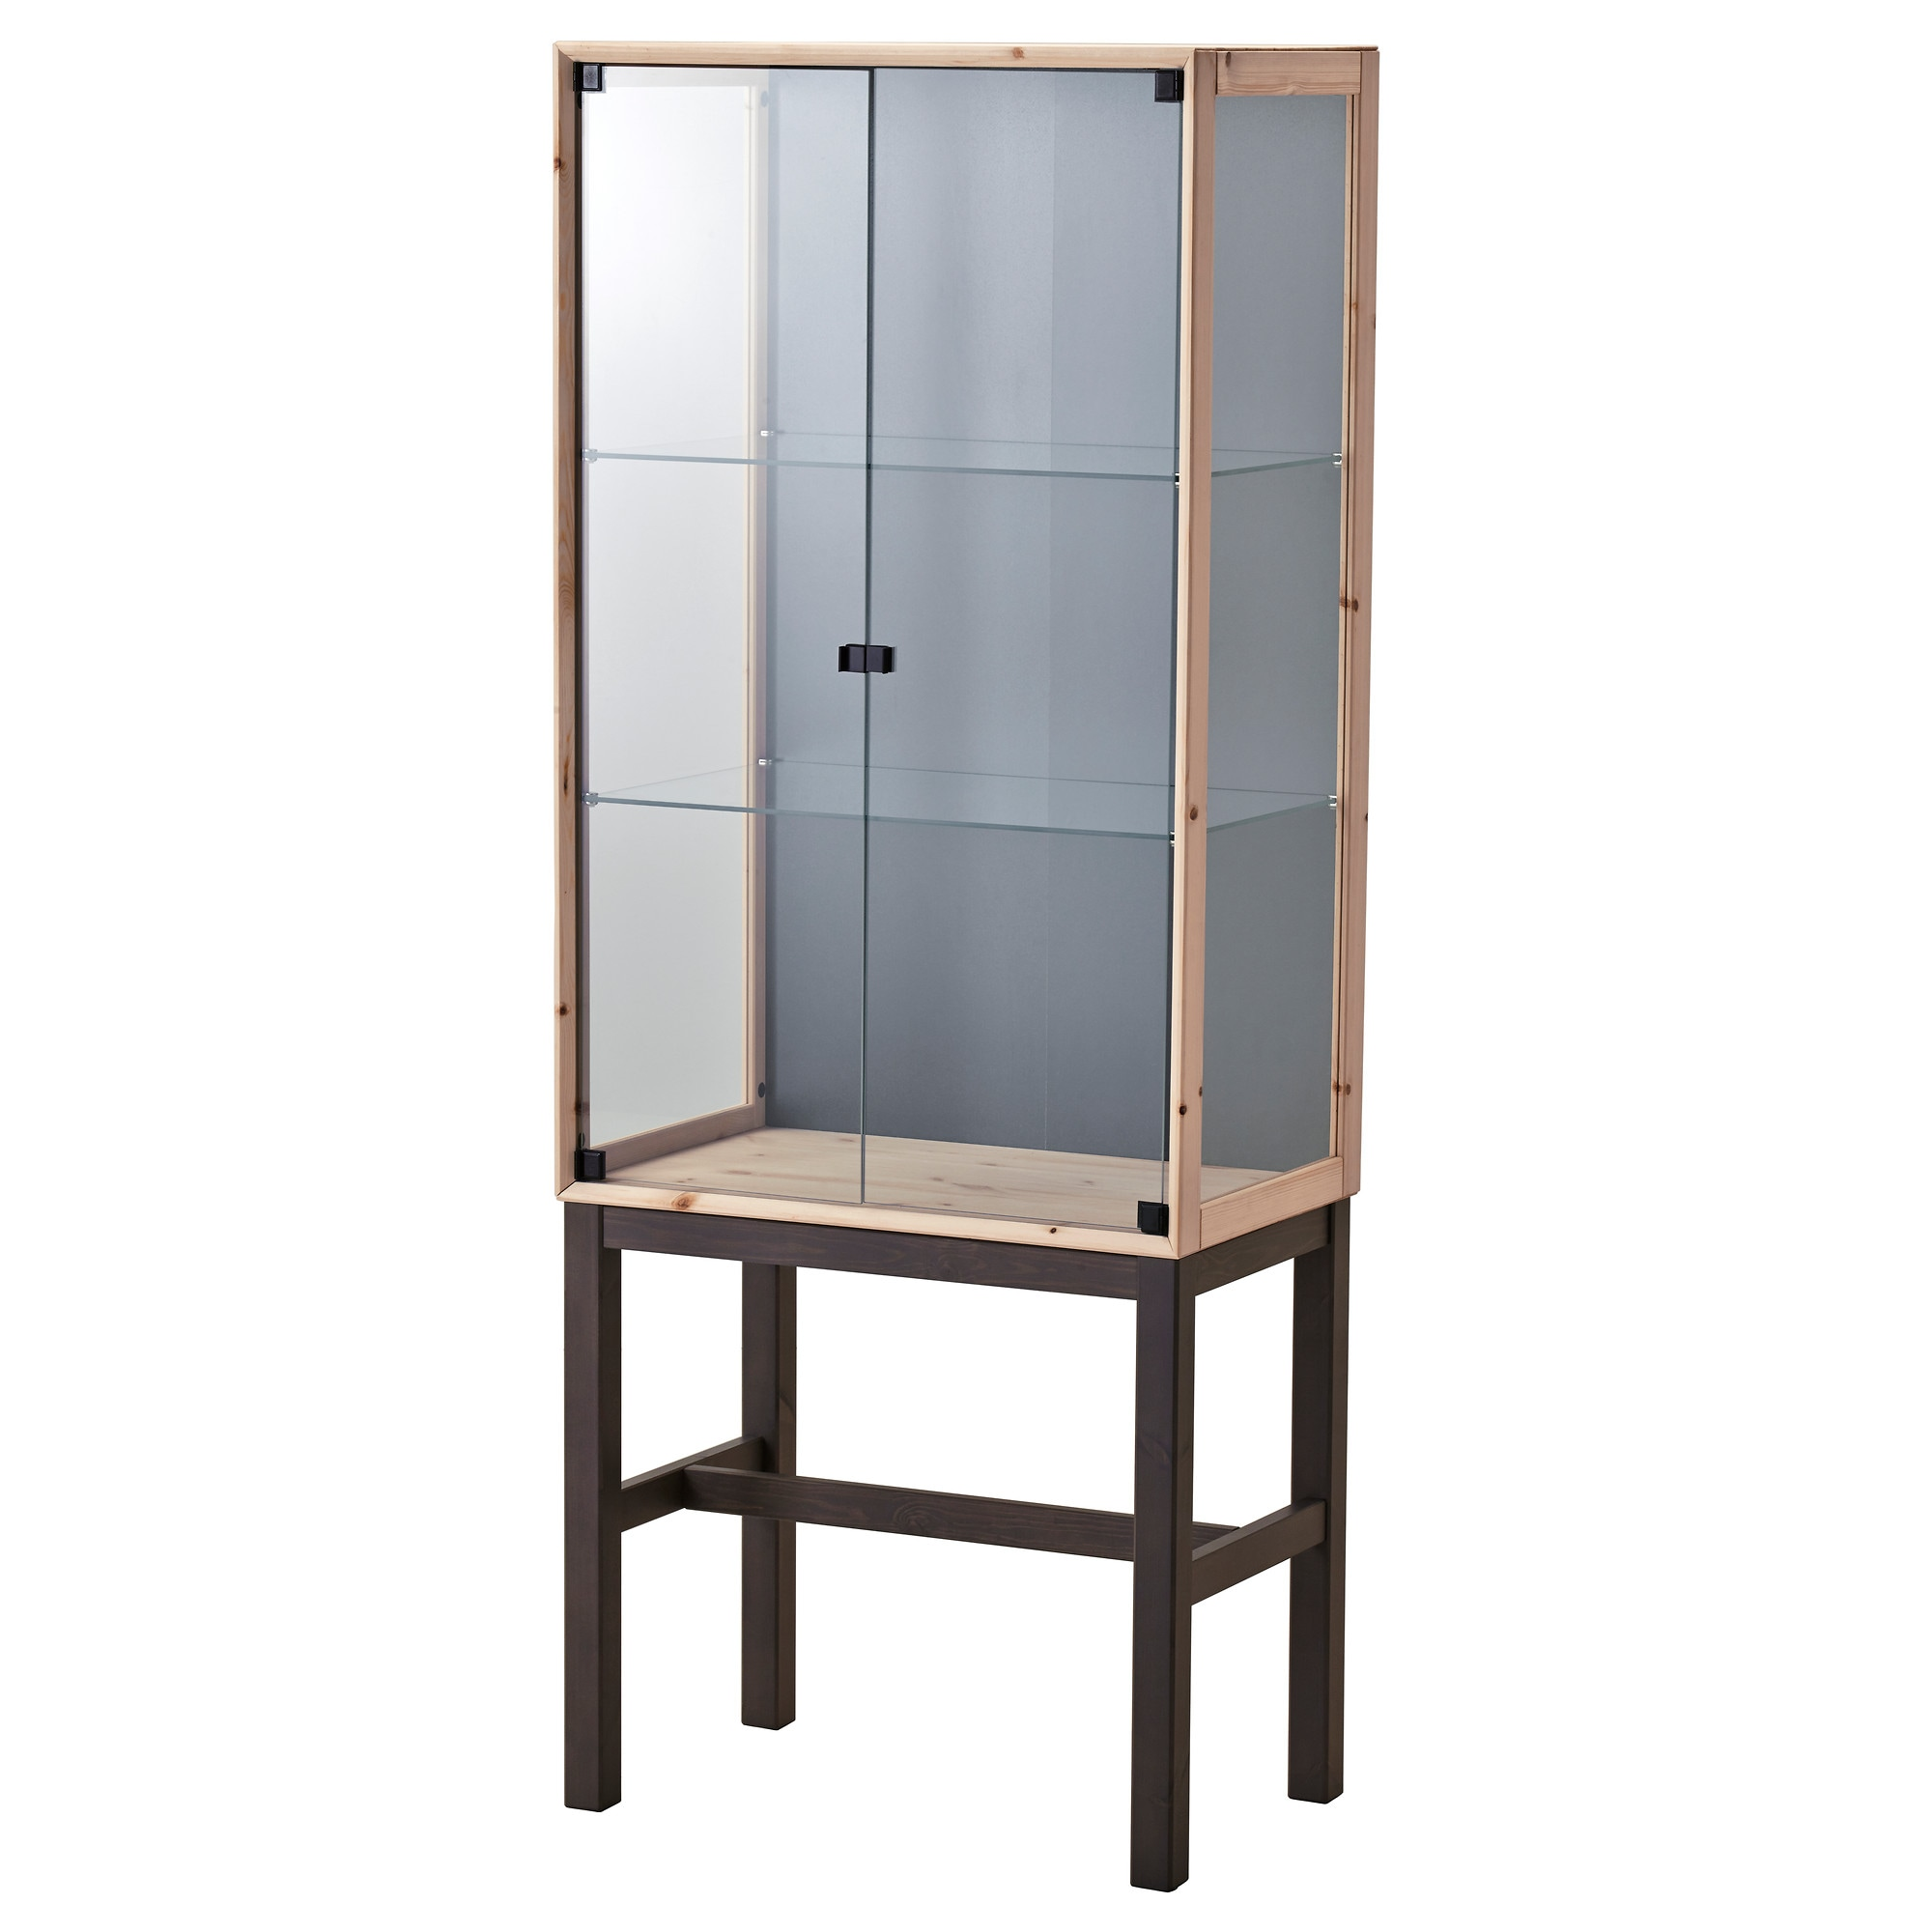 norden glass door cabinet ikea. Black Bedroom Furniture Sets. Home Design Ideas